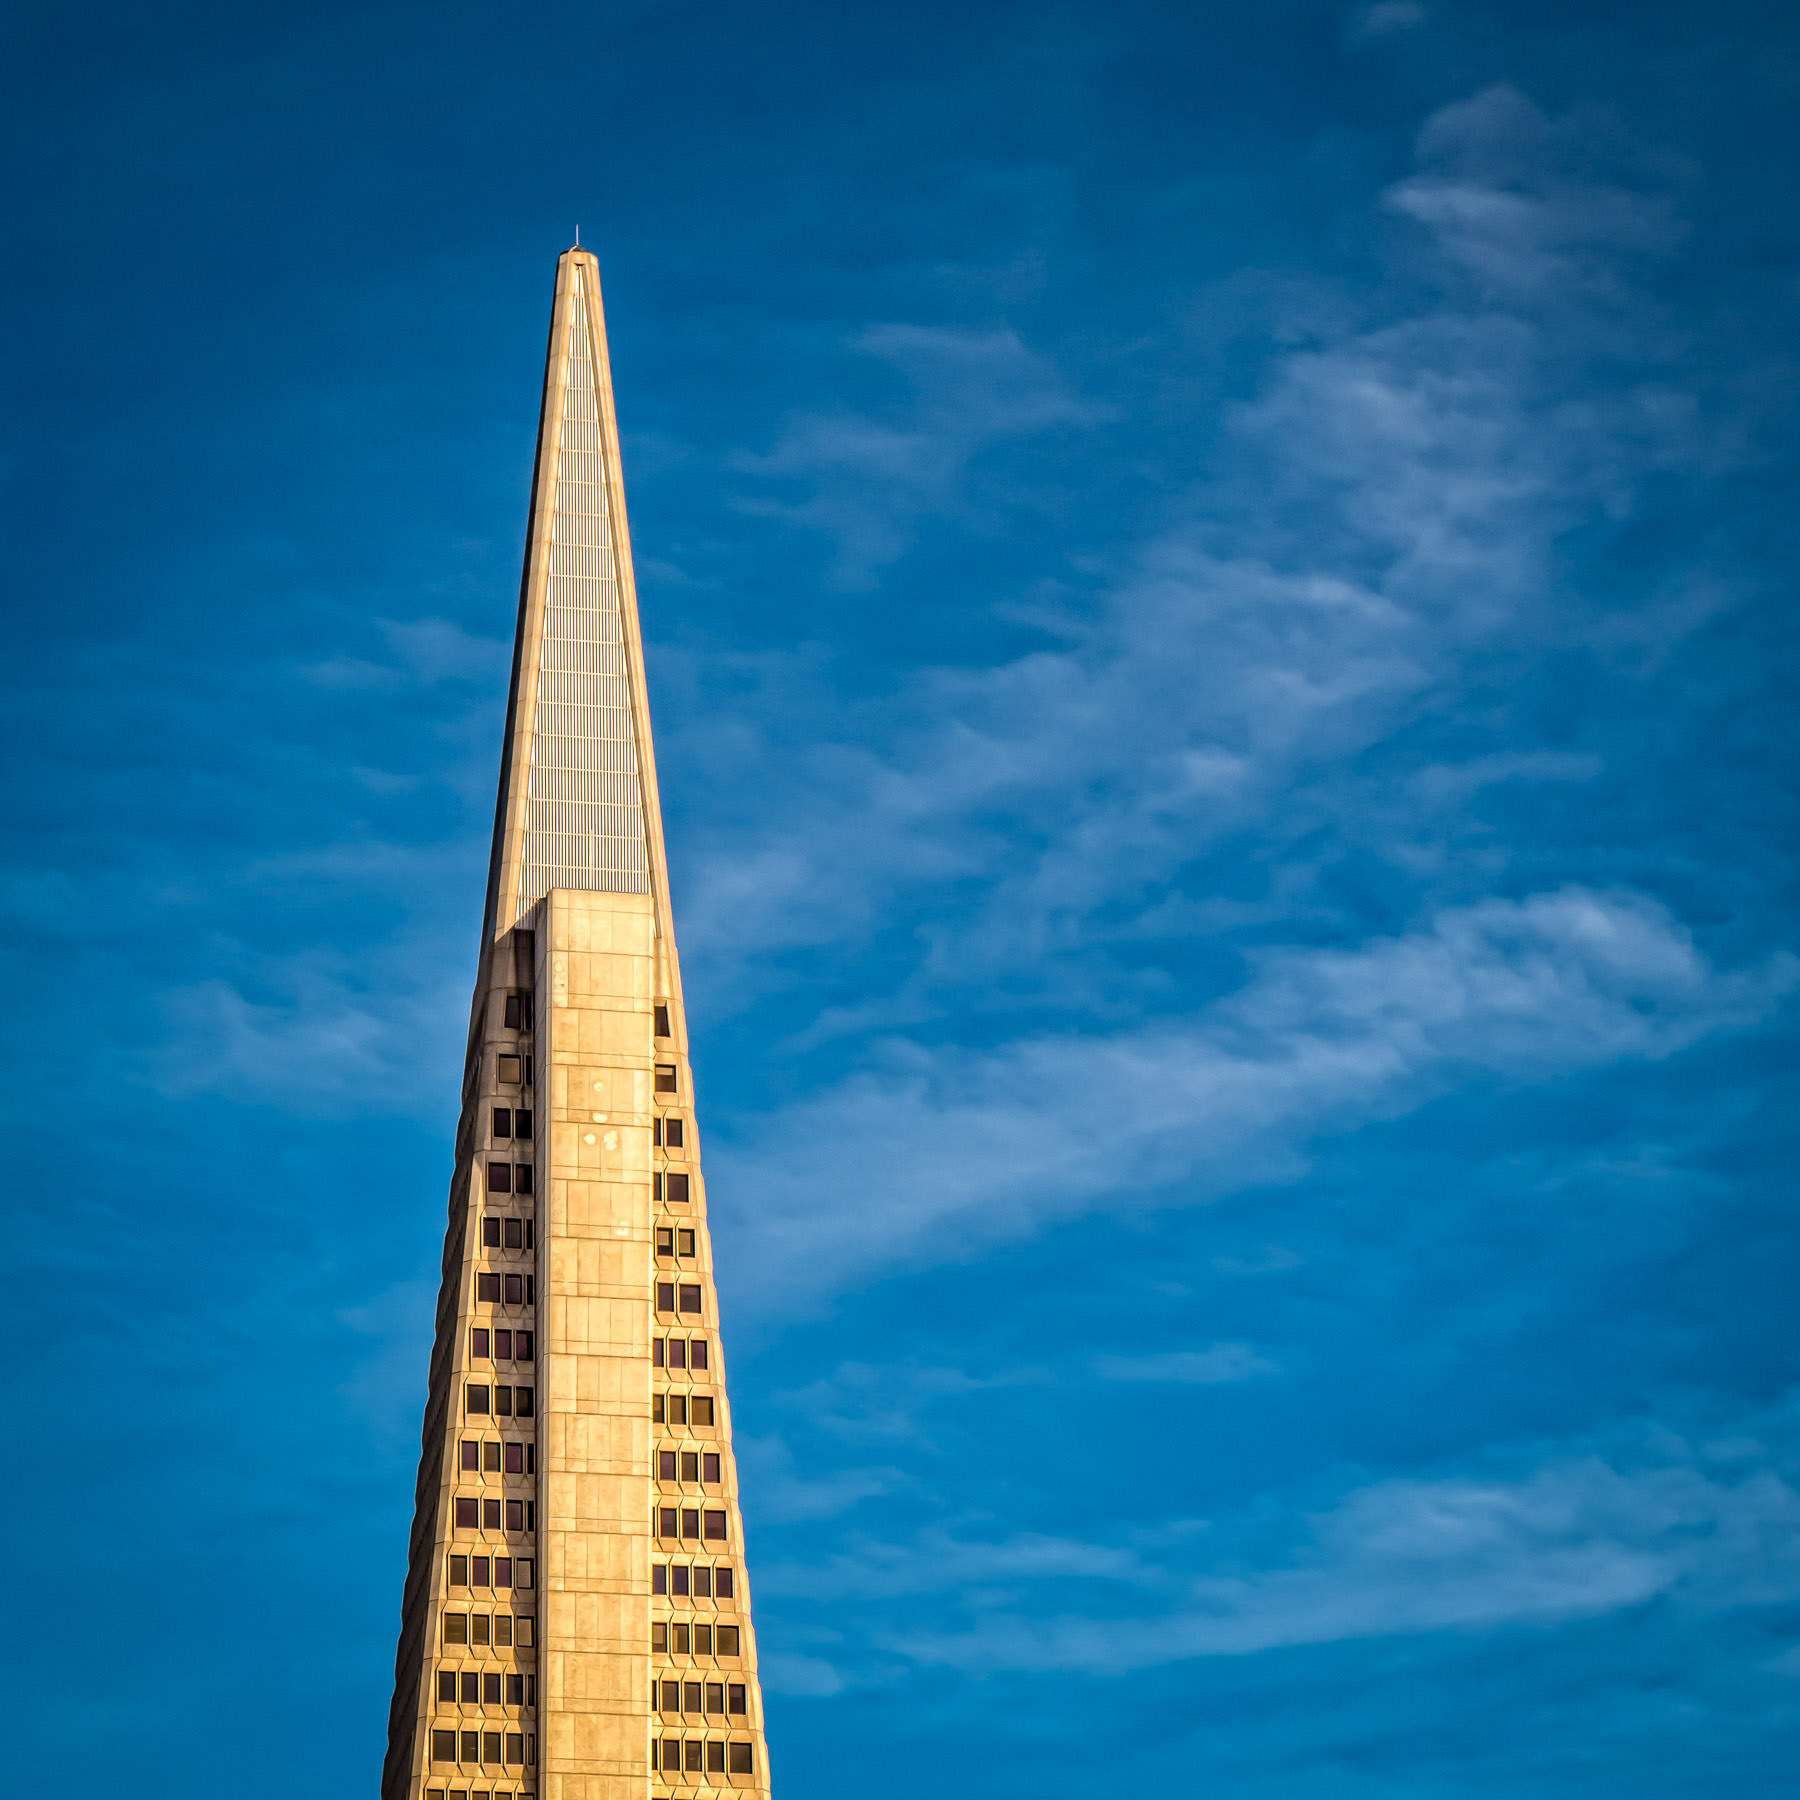 The Transamerica Pyramid rises into the azure sky over San Francisco.